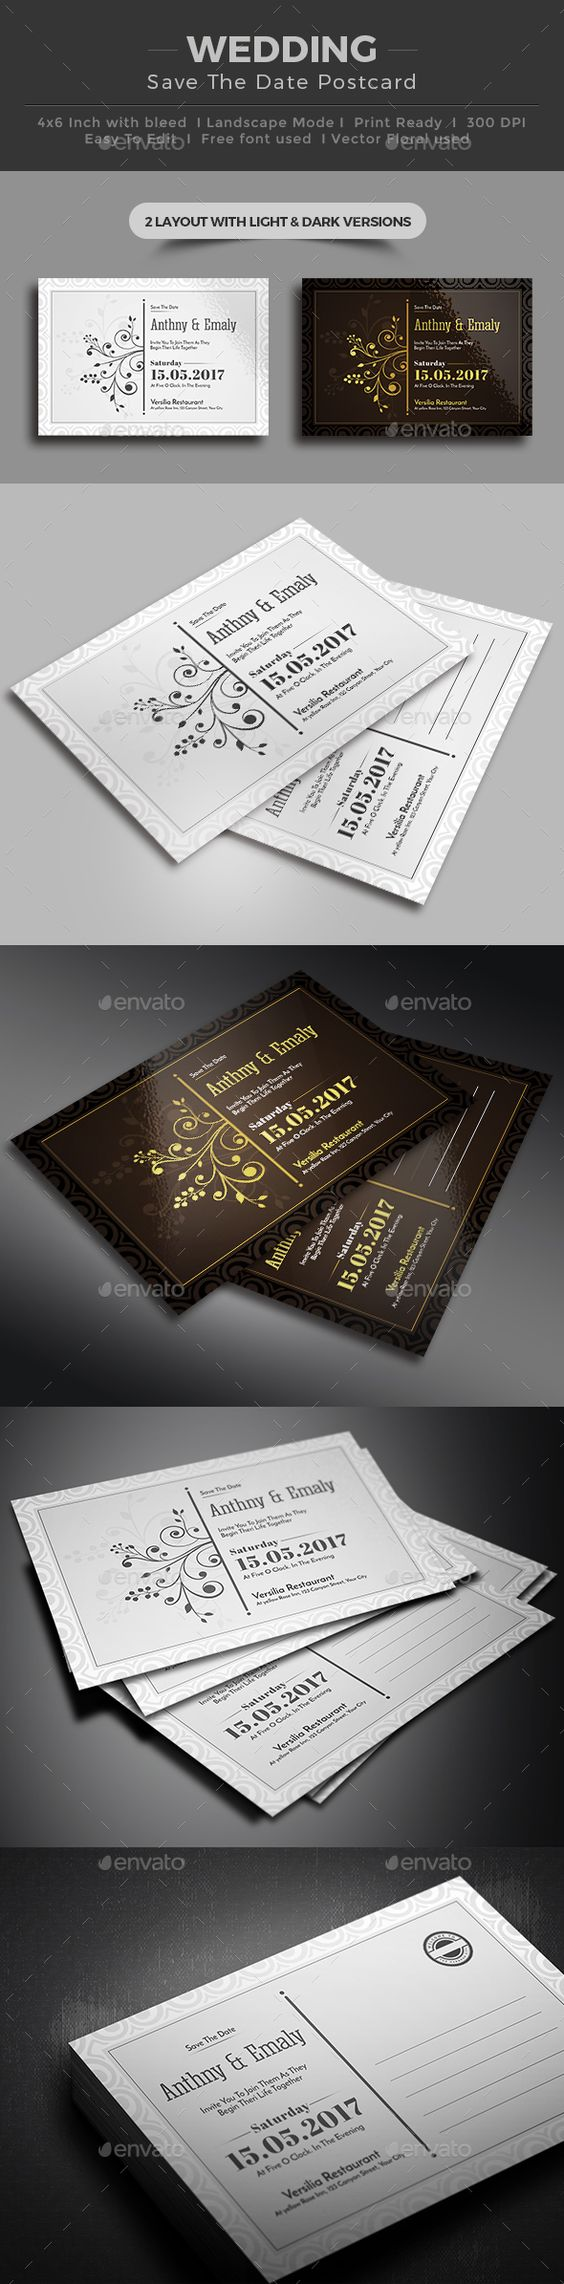 posts the o'jays and wedding on, invitation samples